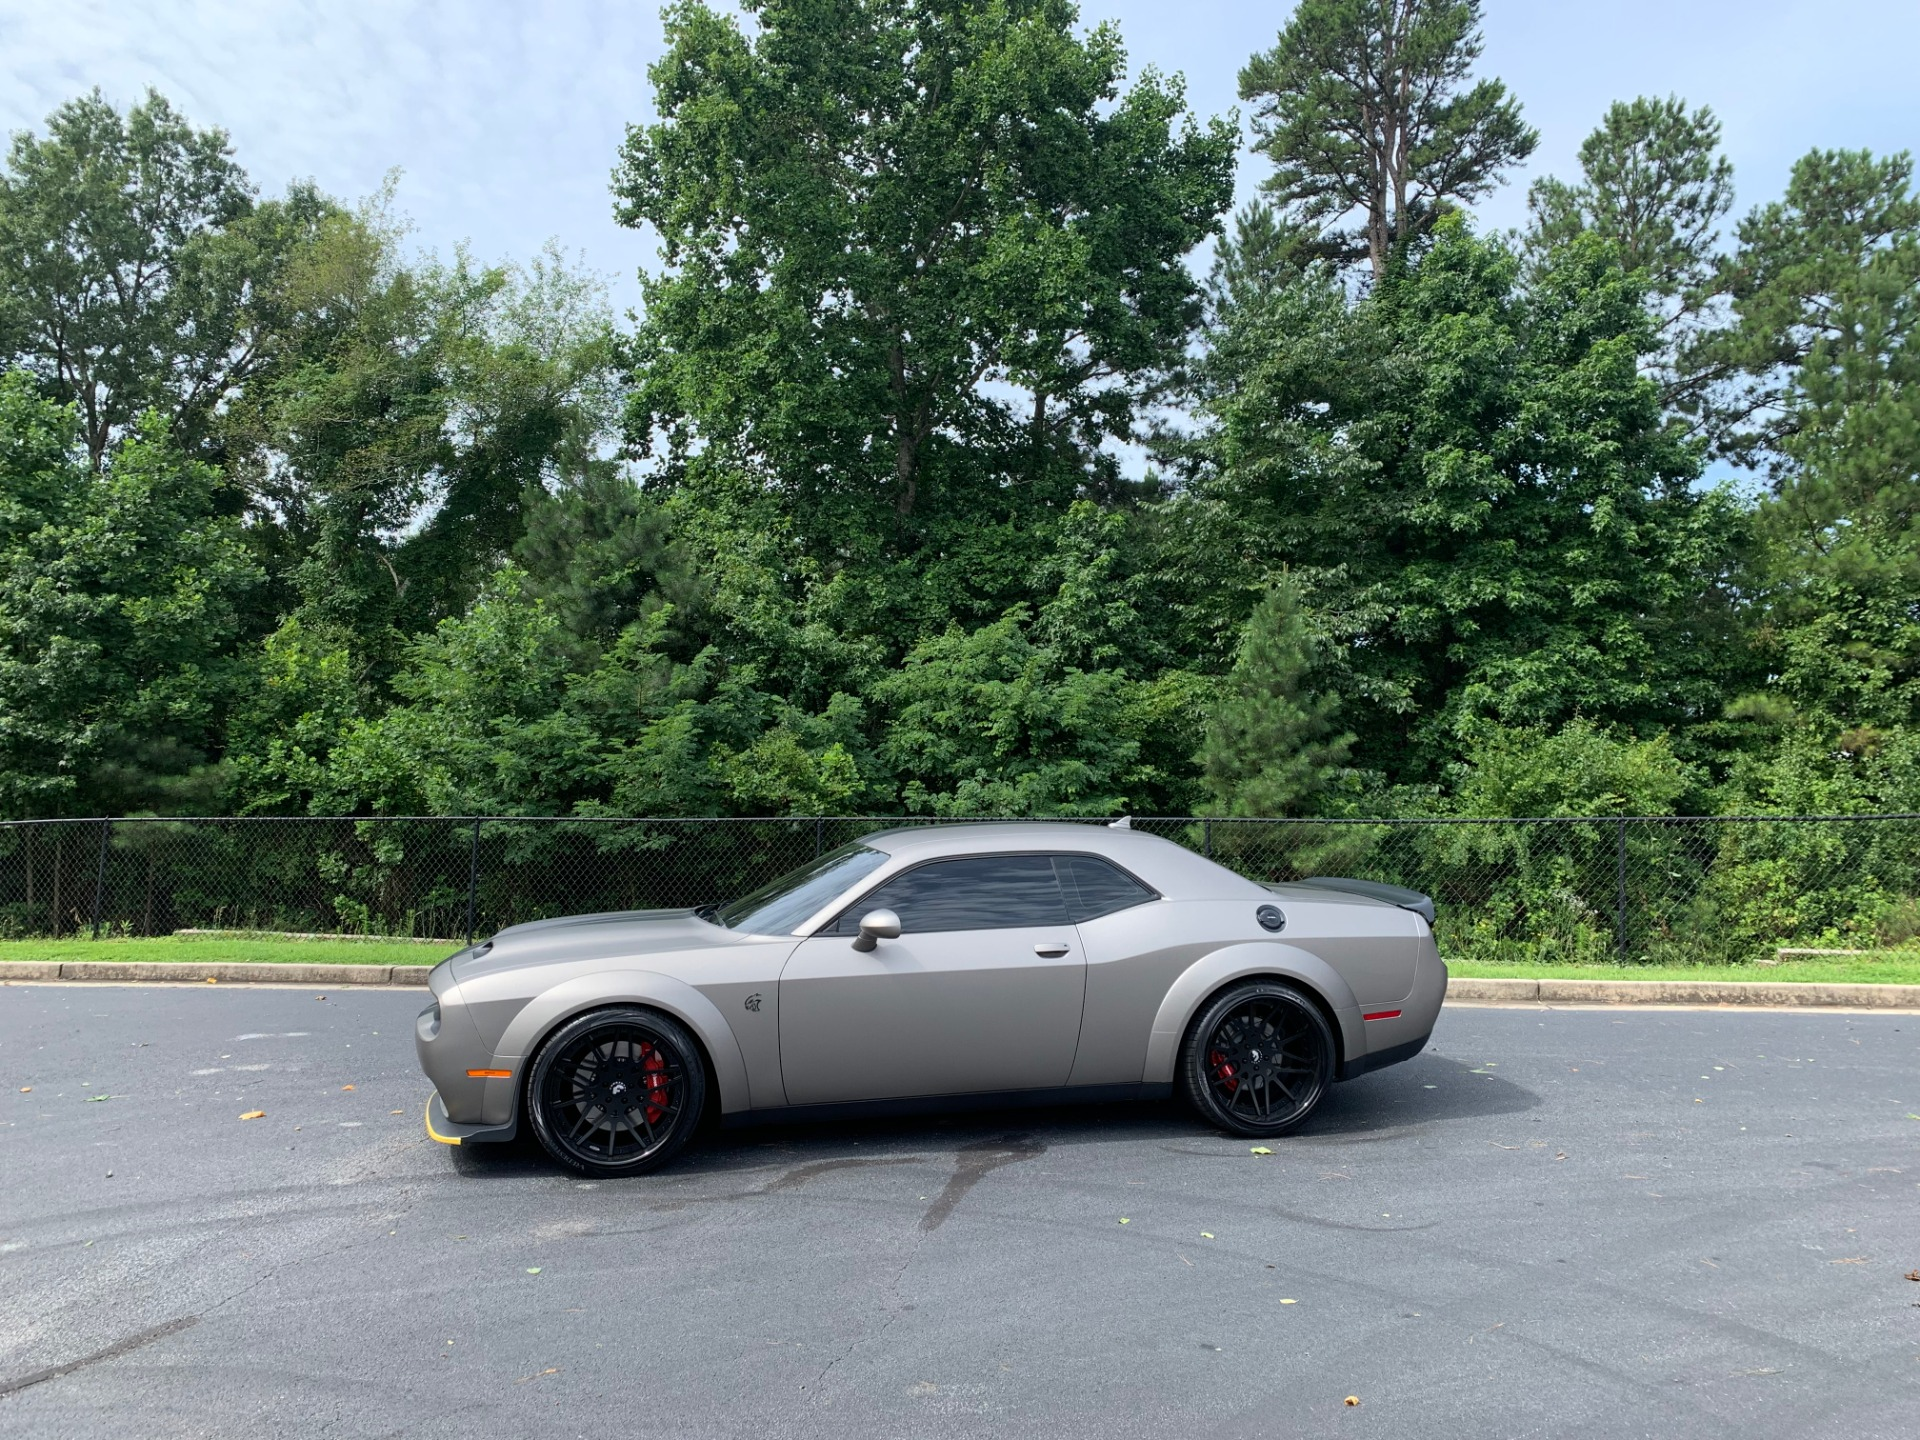 New 2020 Dodge Challenger Redeye RS Redeye RS | Peachtree City, GA